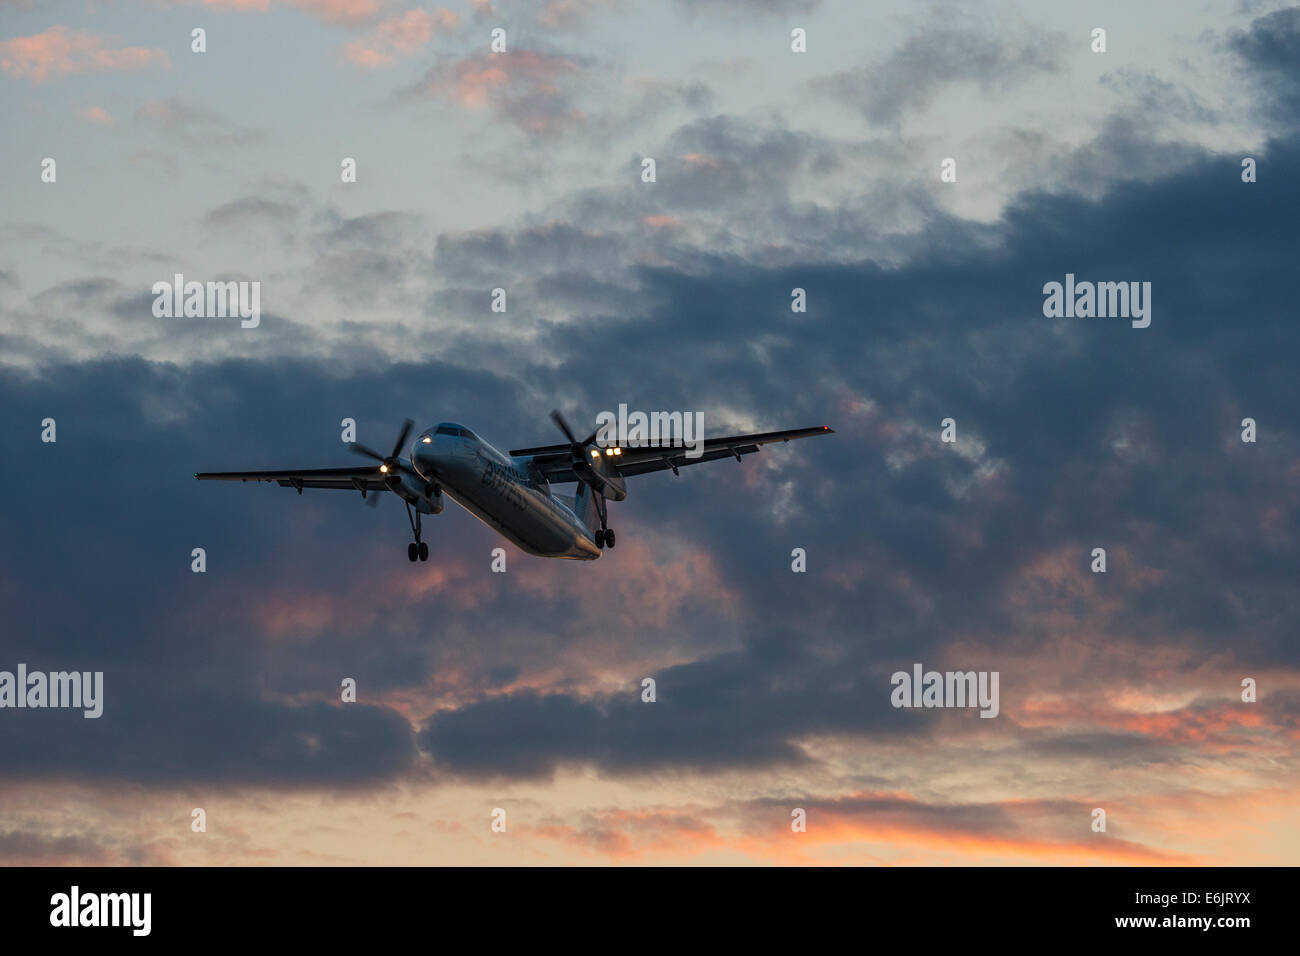 Commercial airliner Dash 8 Turboprop on final approach for landing-Victoria, British Columbia, Canada. - Stock Image